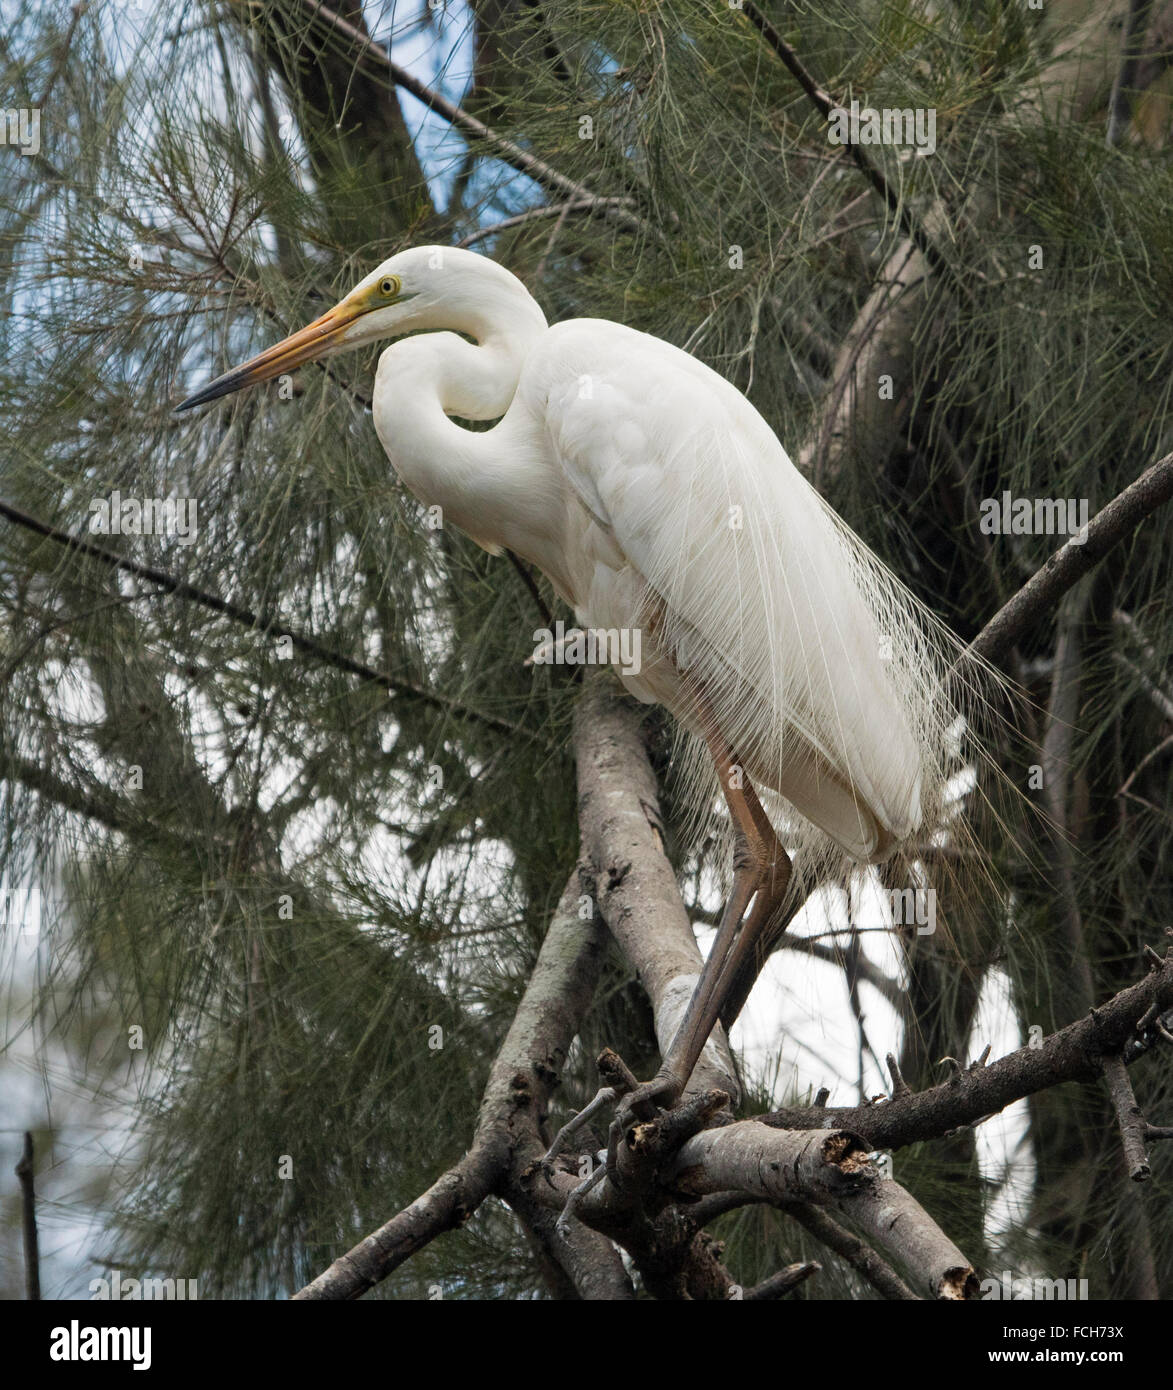 Beautiful plumed / intermediate egret Ardea intermedia with lacy white breeding plumage on branch with background - Stock Image